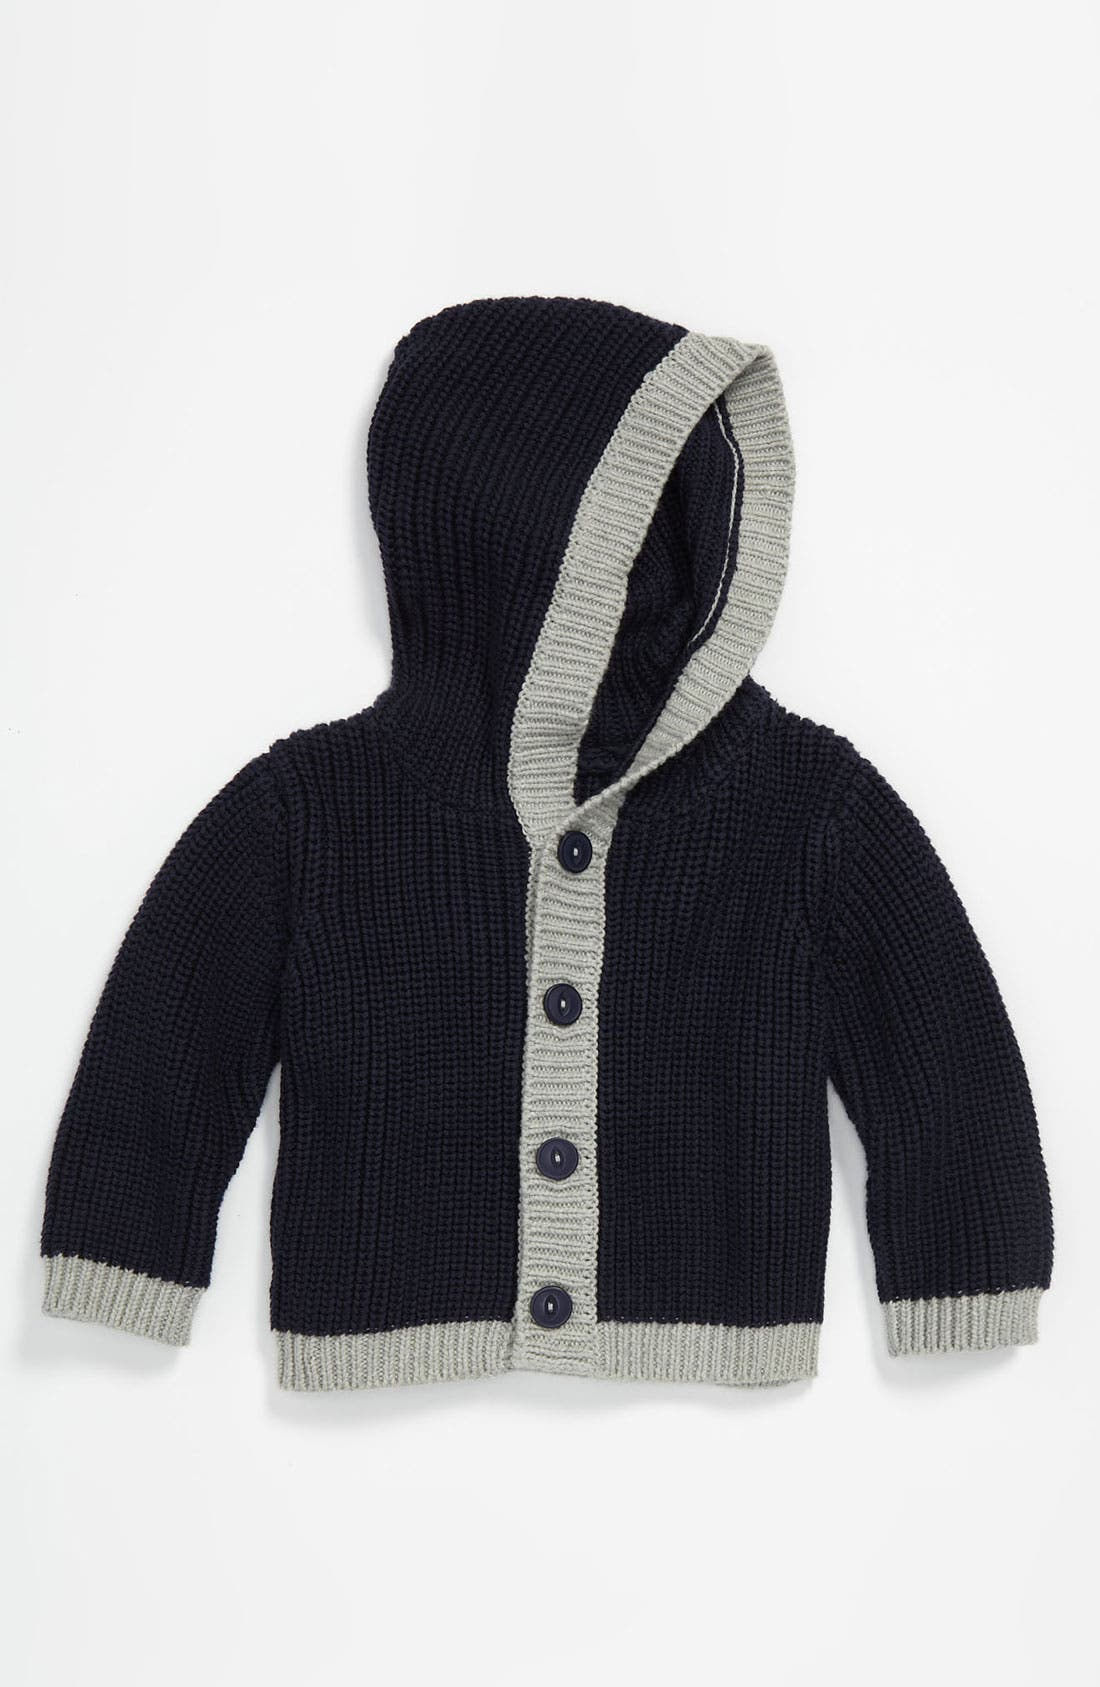 Main Image - Nordstrom Baby Shaker Sweater (Infant)